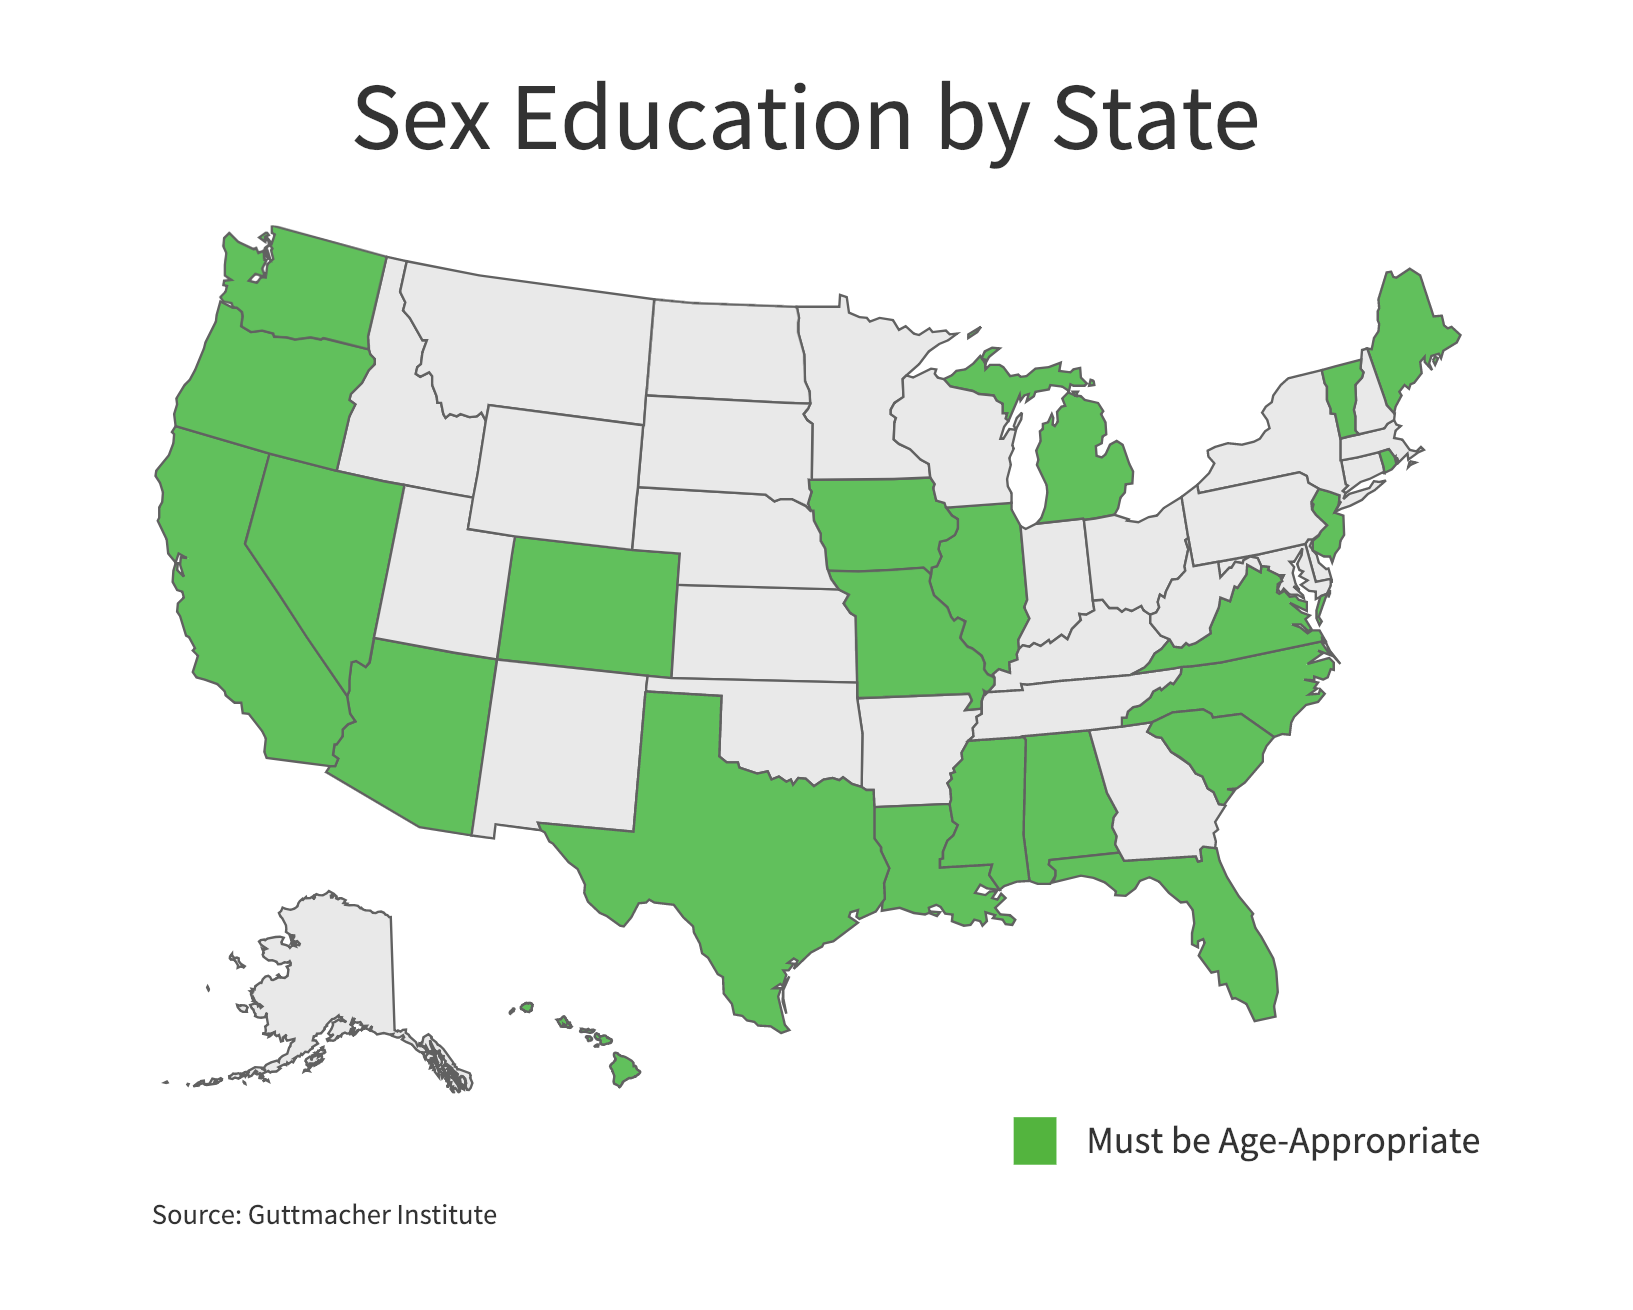 Twenty-three states and the District of Columbia require that when sexual education is provided it be age-appropriate. (Charts by Ester Wells/MNS)